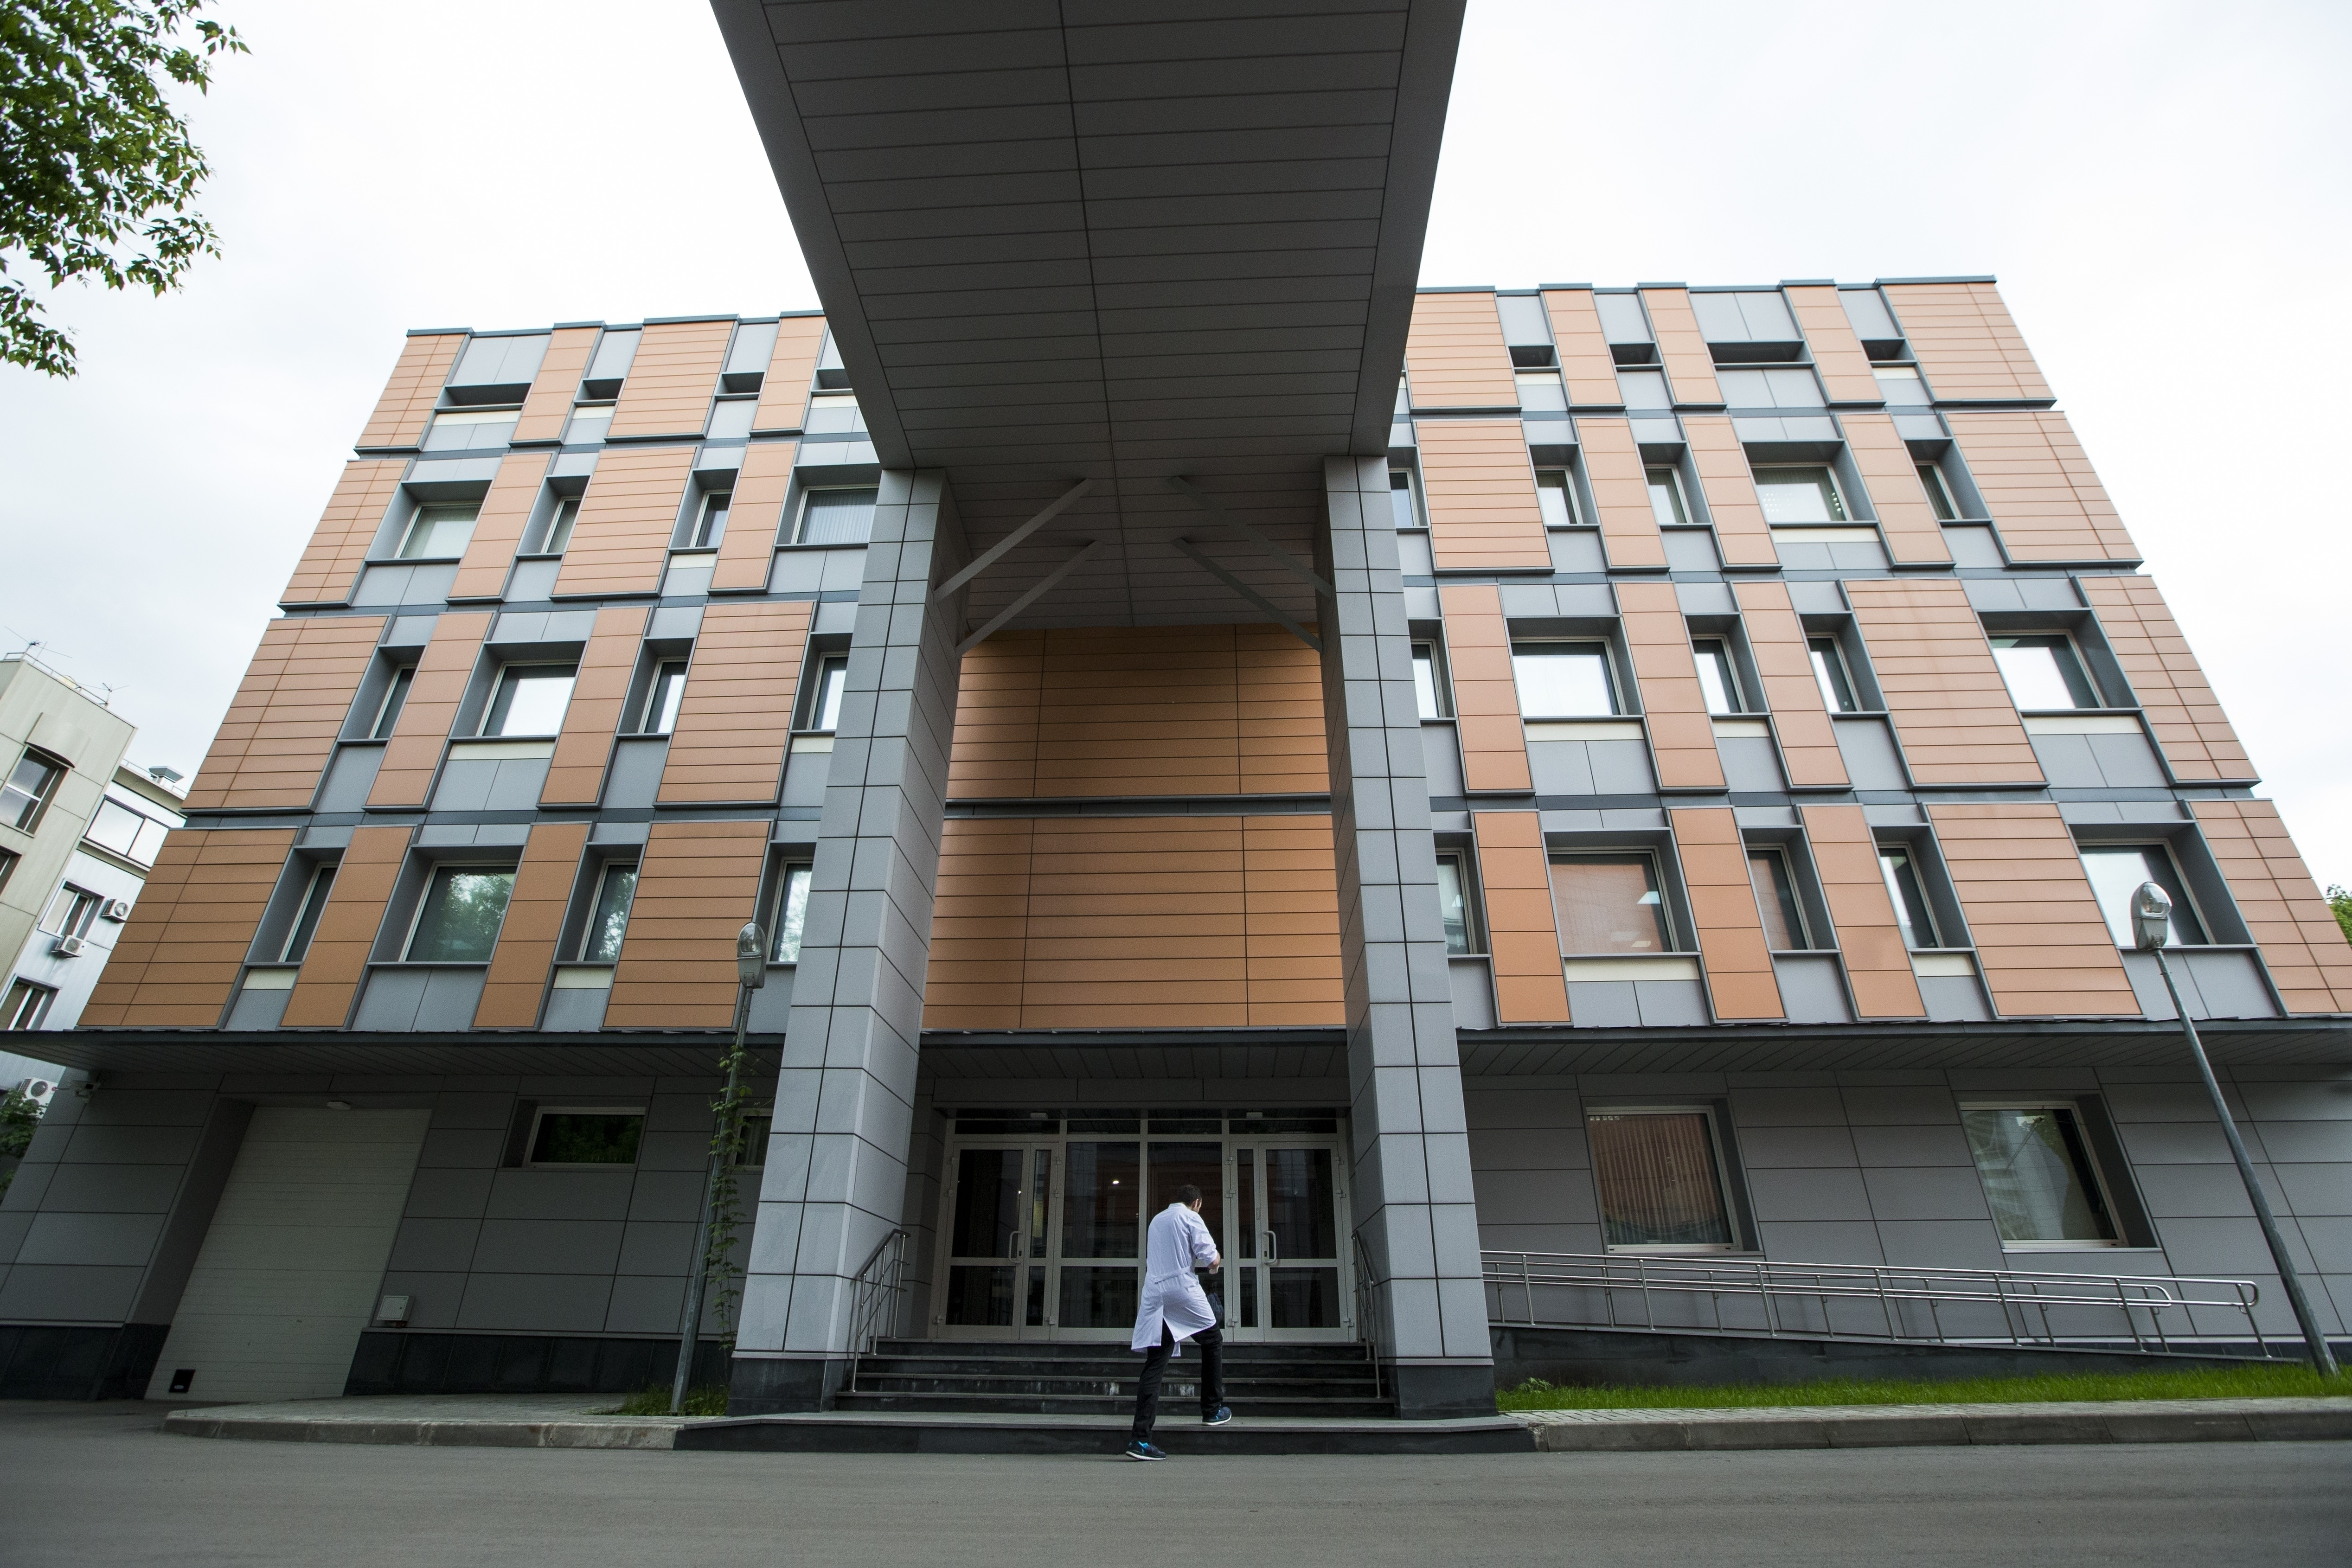 FILE - In this Tuesday, May 24, 2016 file photo, an employee walks into the building of the Russia's national drug-testing laboratory in Moscow, Russia. Vladimir Putin's spokesman says Russia is